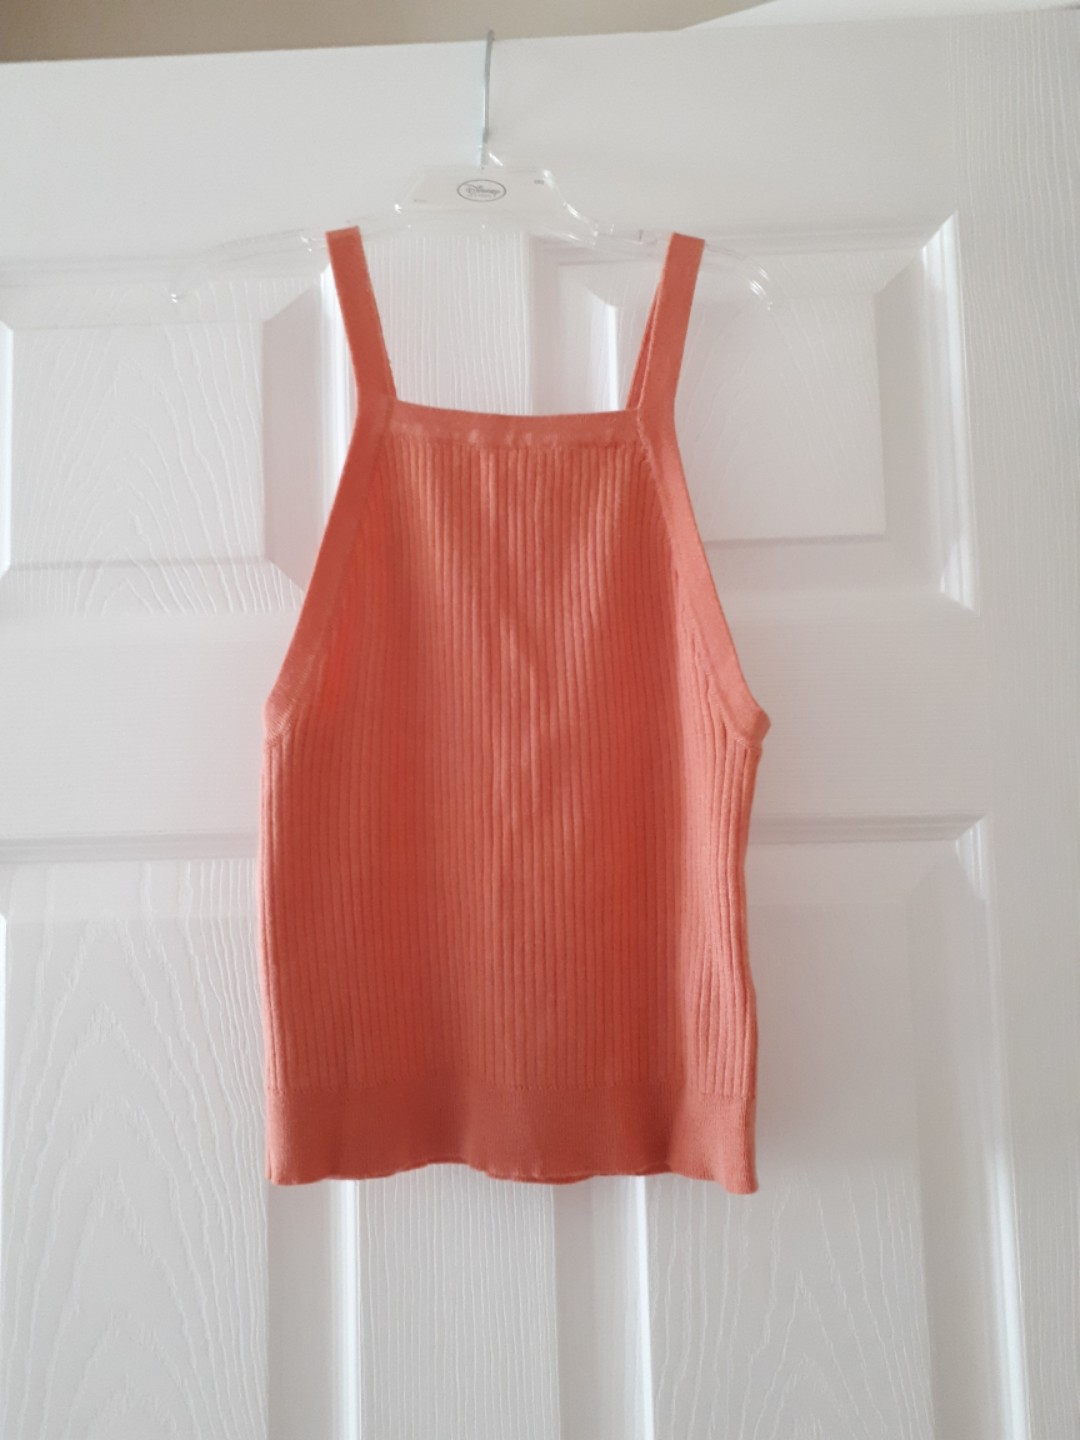 Peach top  (Size small)